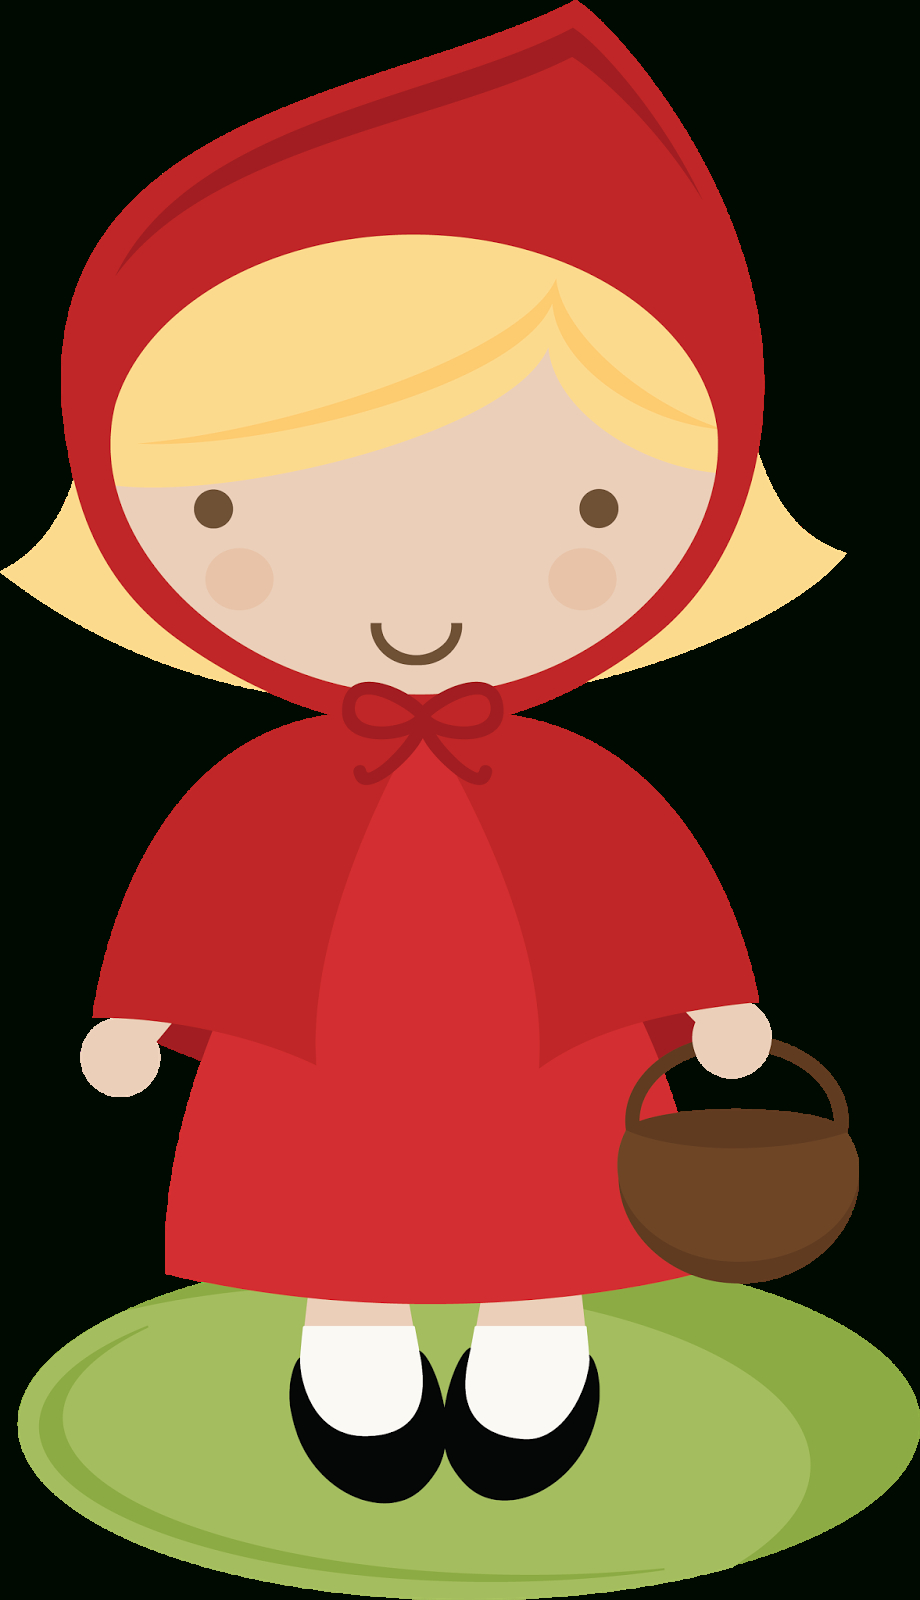 Little Red Riding Hood Template - Clipart Best | Blondie's Fairy - Little Red Riding Hood Masks Printable Free